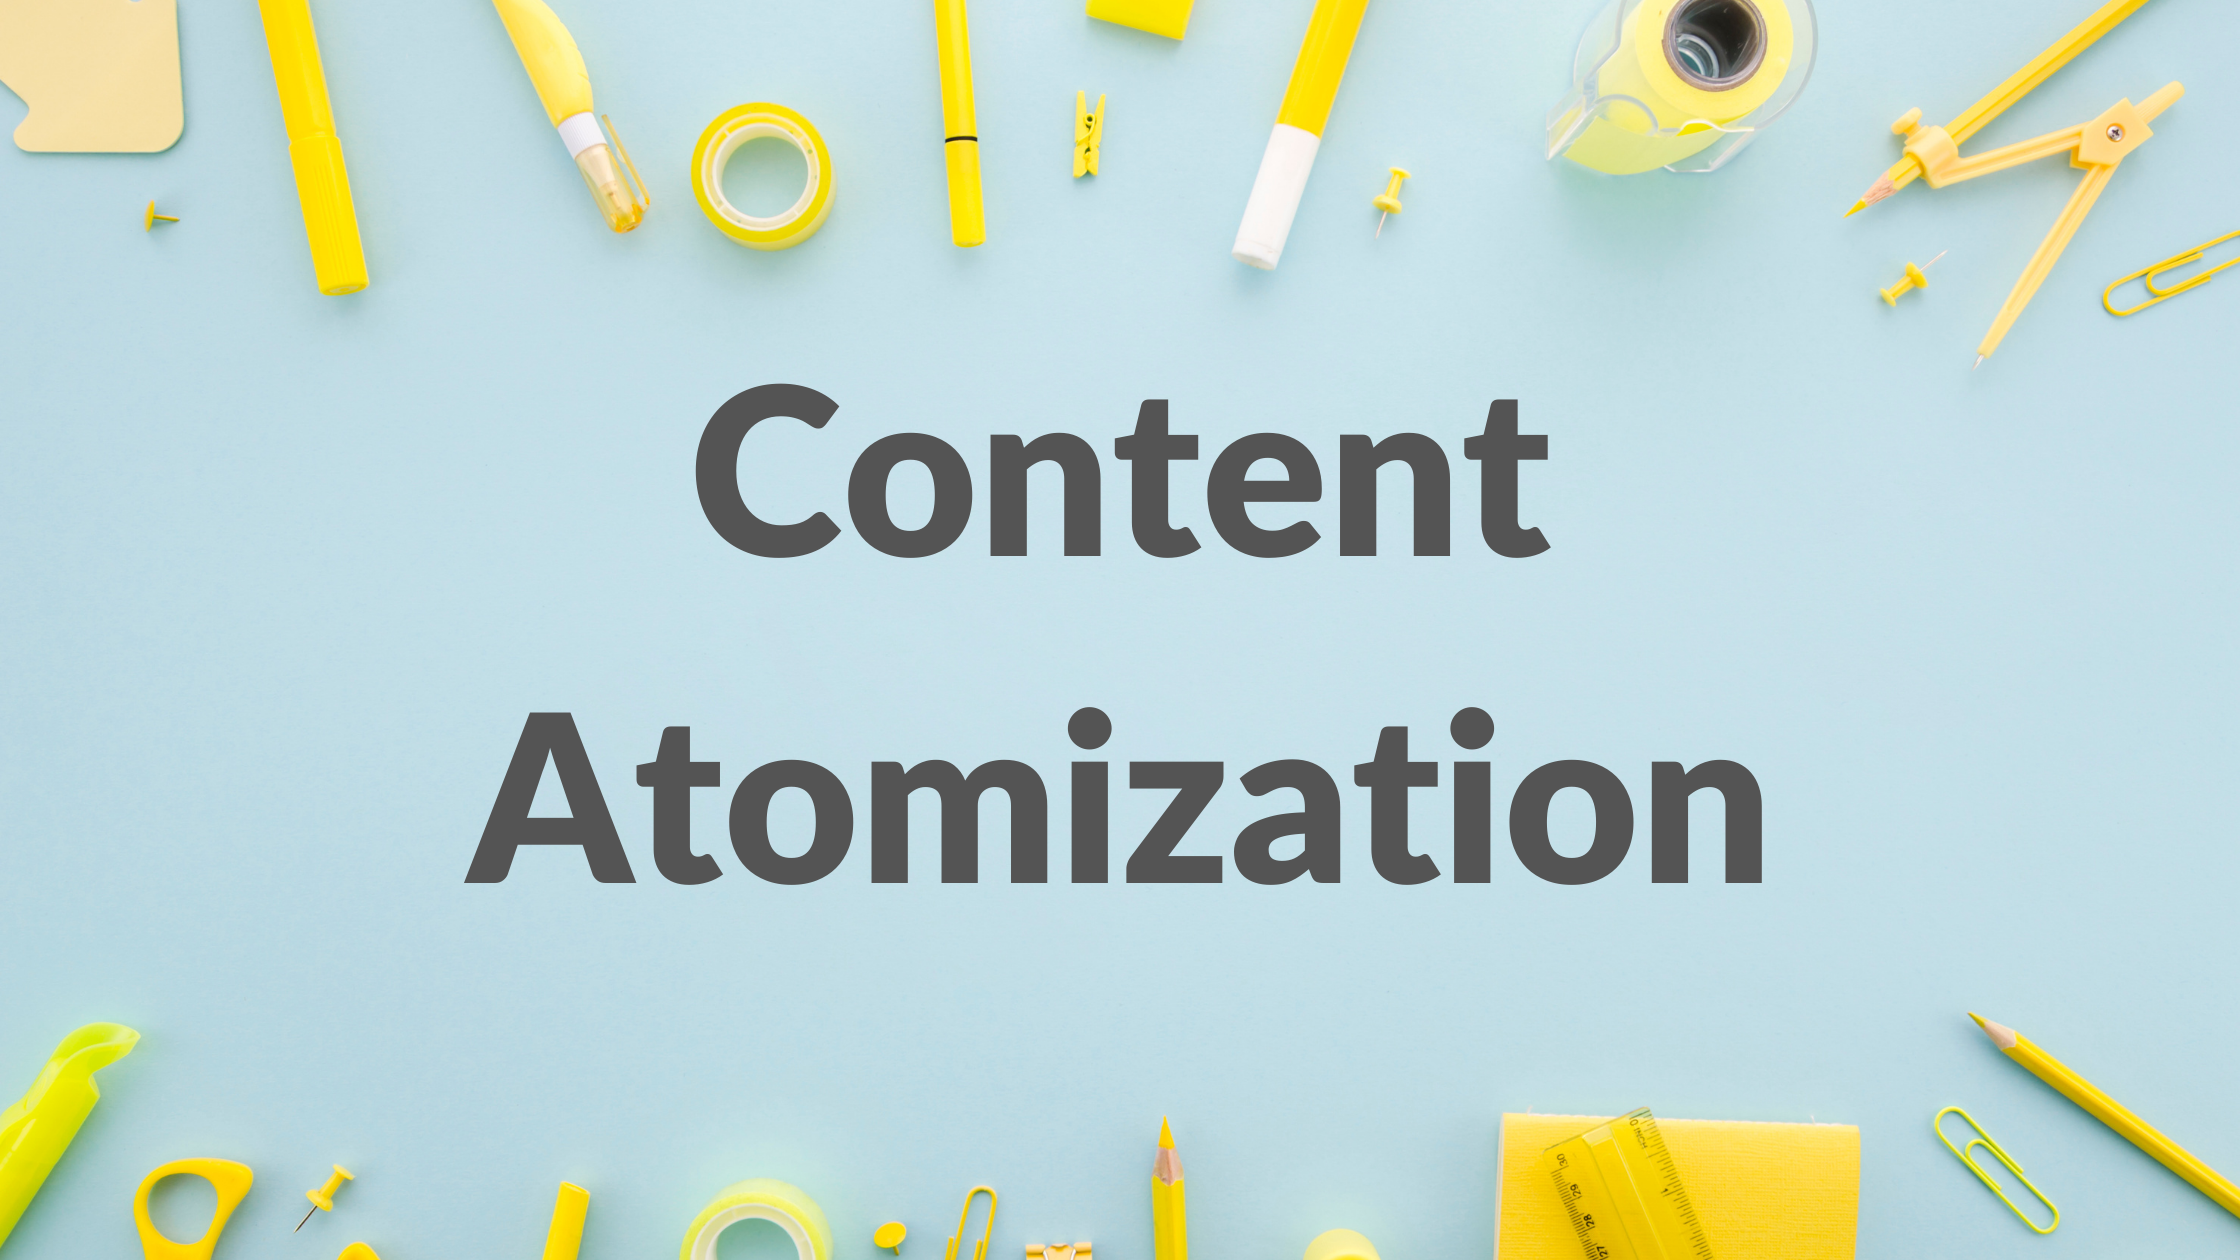 content atomization, what is content atomization, how to atomize content, benefits of content atomization, content marketing strategy, content marketing strategies